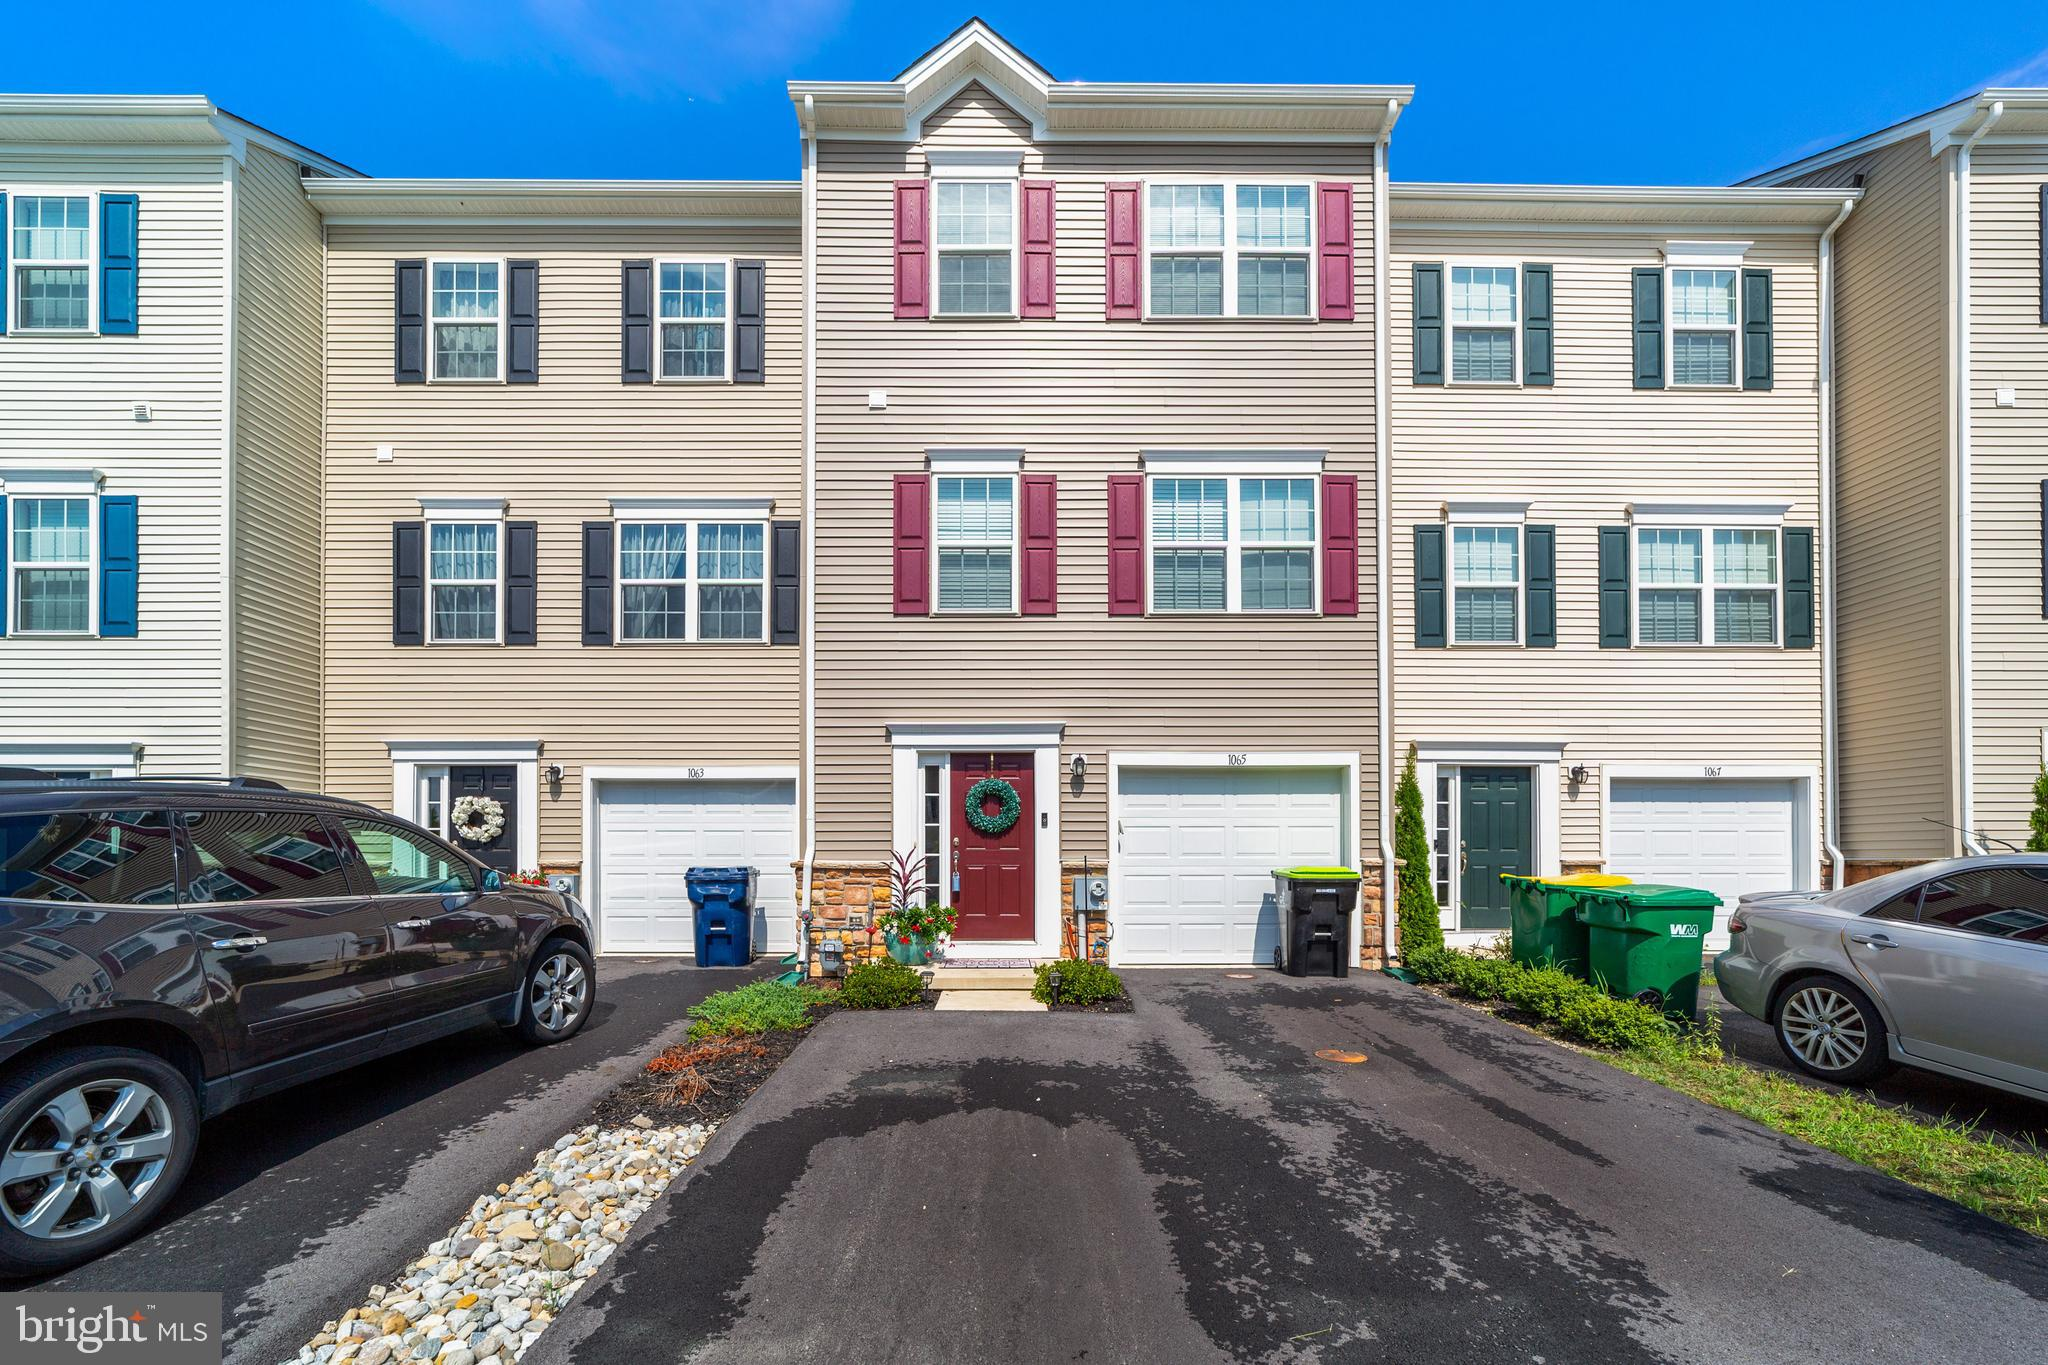 Showings begin at open house 8/28 at 11 am! Why wait for new construction! This well maintained, 2 year old, 3-story town home is in great condition. Nothing to do here but move in. Located in Hyett's Crossing and conveniently located within minutes of route 1 access, just south of the canal.  Upon entering the home through your spacious foyer the  hallway leads to your finished family room with access to your fenced rear yard backing to large open space.  On the main level the open floor plan is highlighted by the large living room and kitchen with  a generous island, pendant lights, stainless steel appliances, white cabinets and granite counters. Upstairs, the third floor boasts a main bedroom suite with private bath and walk in closet. There are also two additional  bedrooms and a full bath on this level. Priced to sell, put this on your tour today!